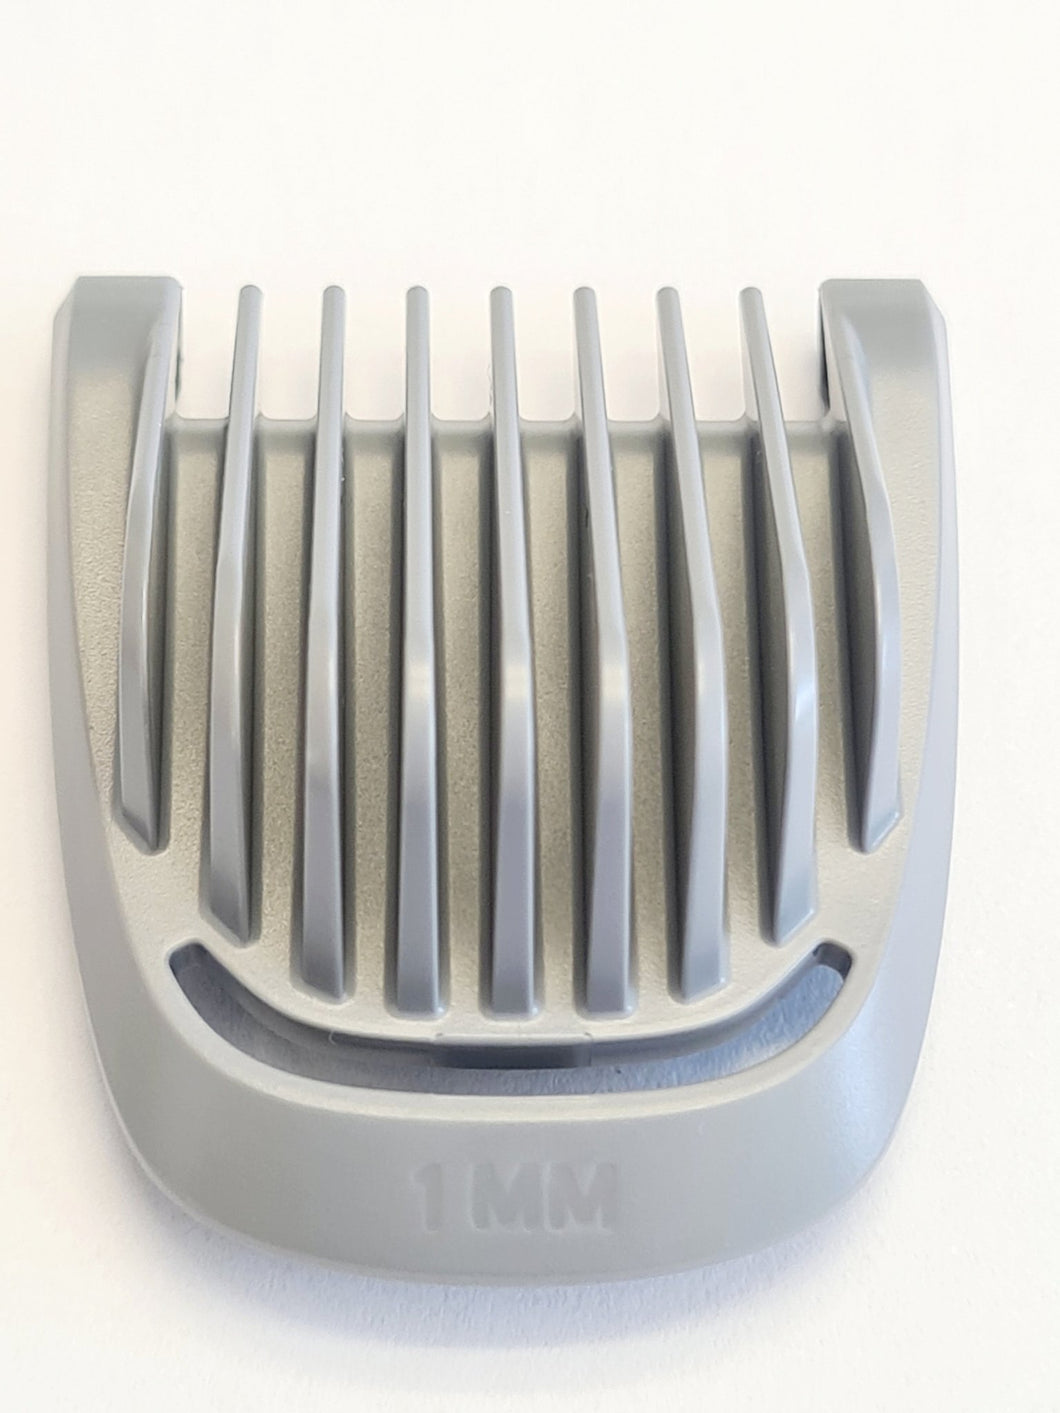 Philips Replacement 1mm Stubble Comb - Get a Cut NZ